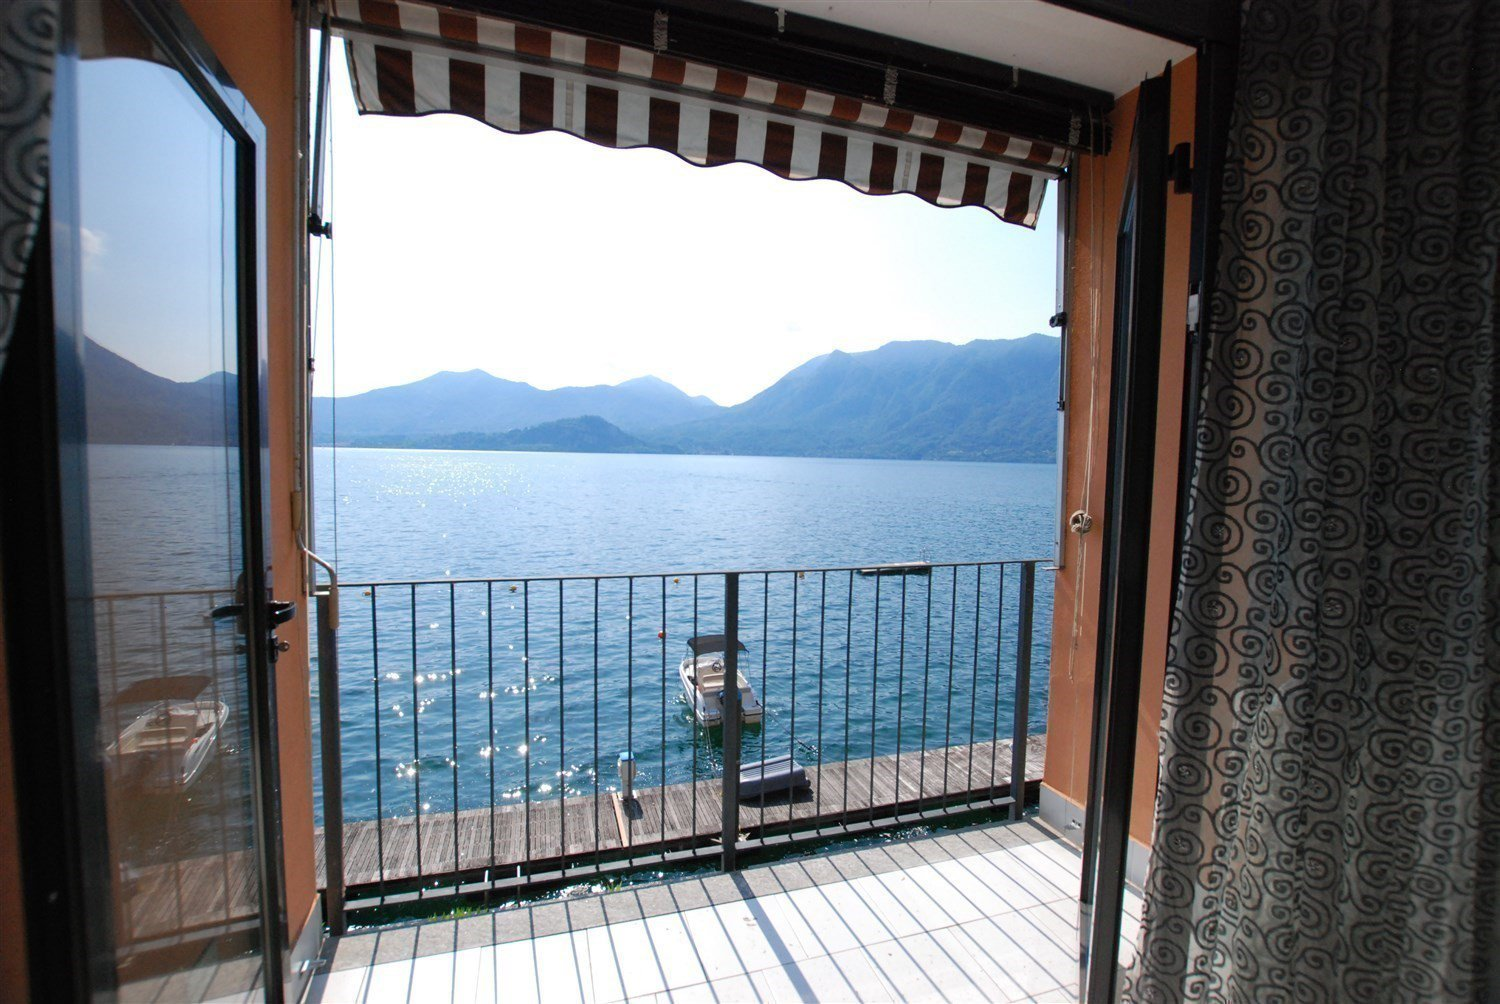 apartment in front of the lake for sale in Ghiffa- terrace with lake view